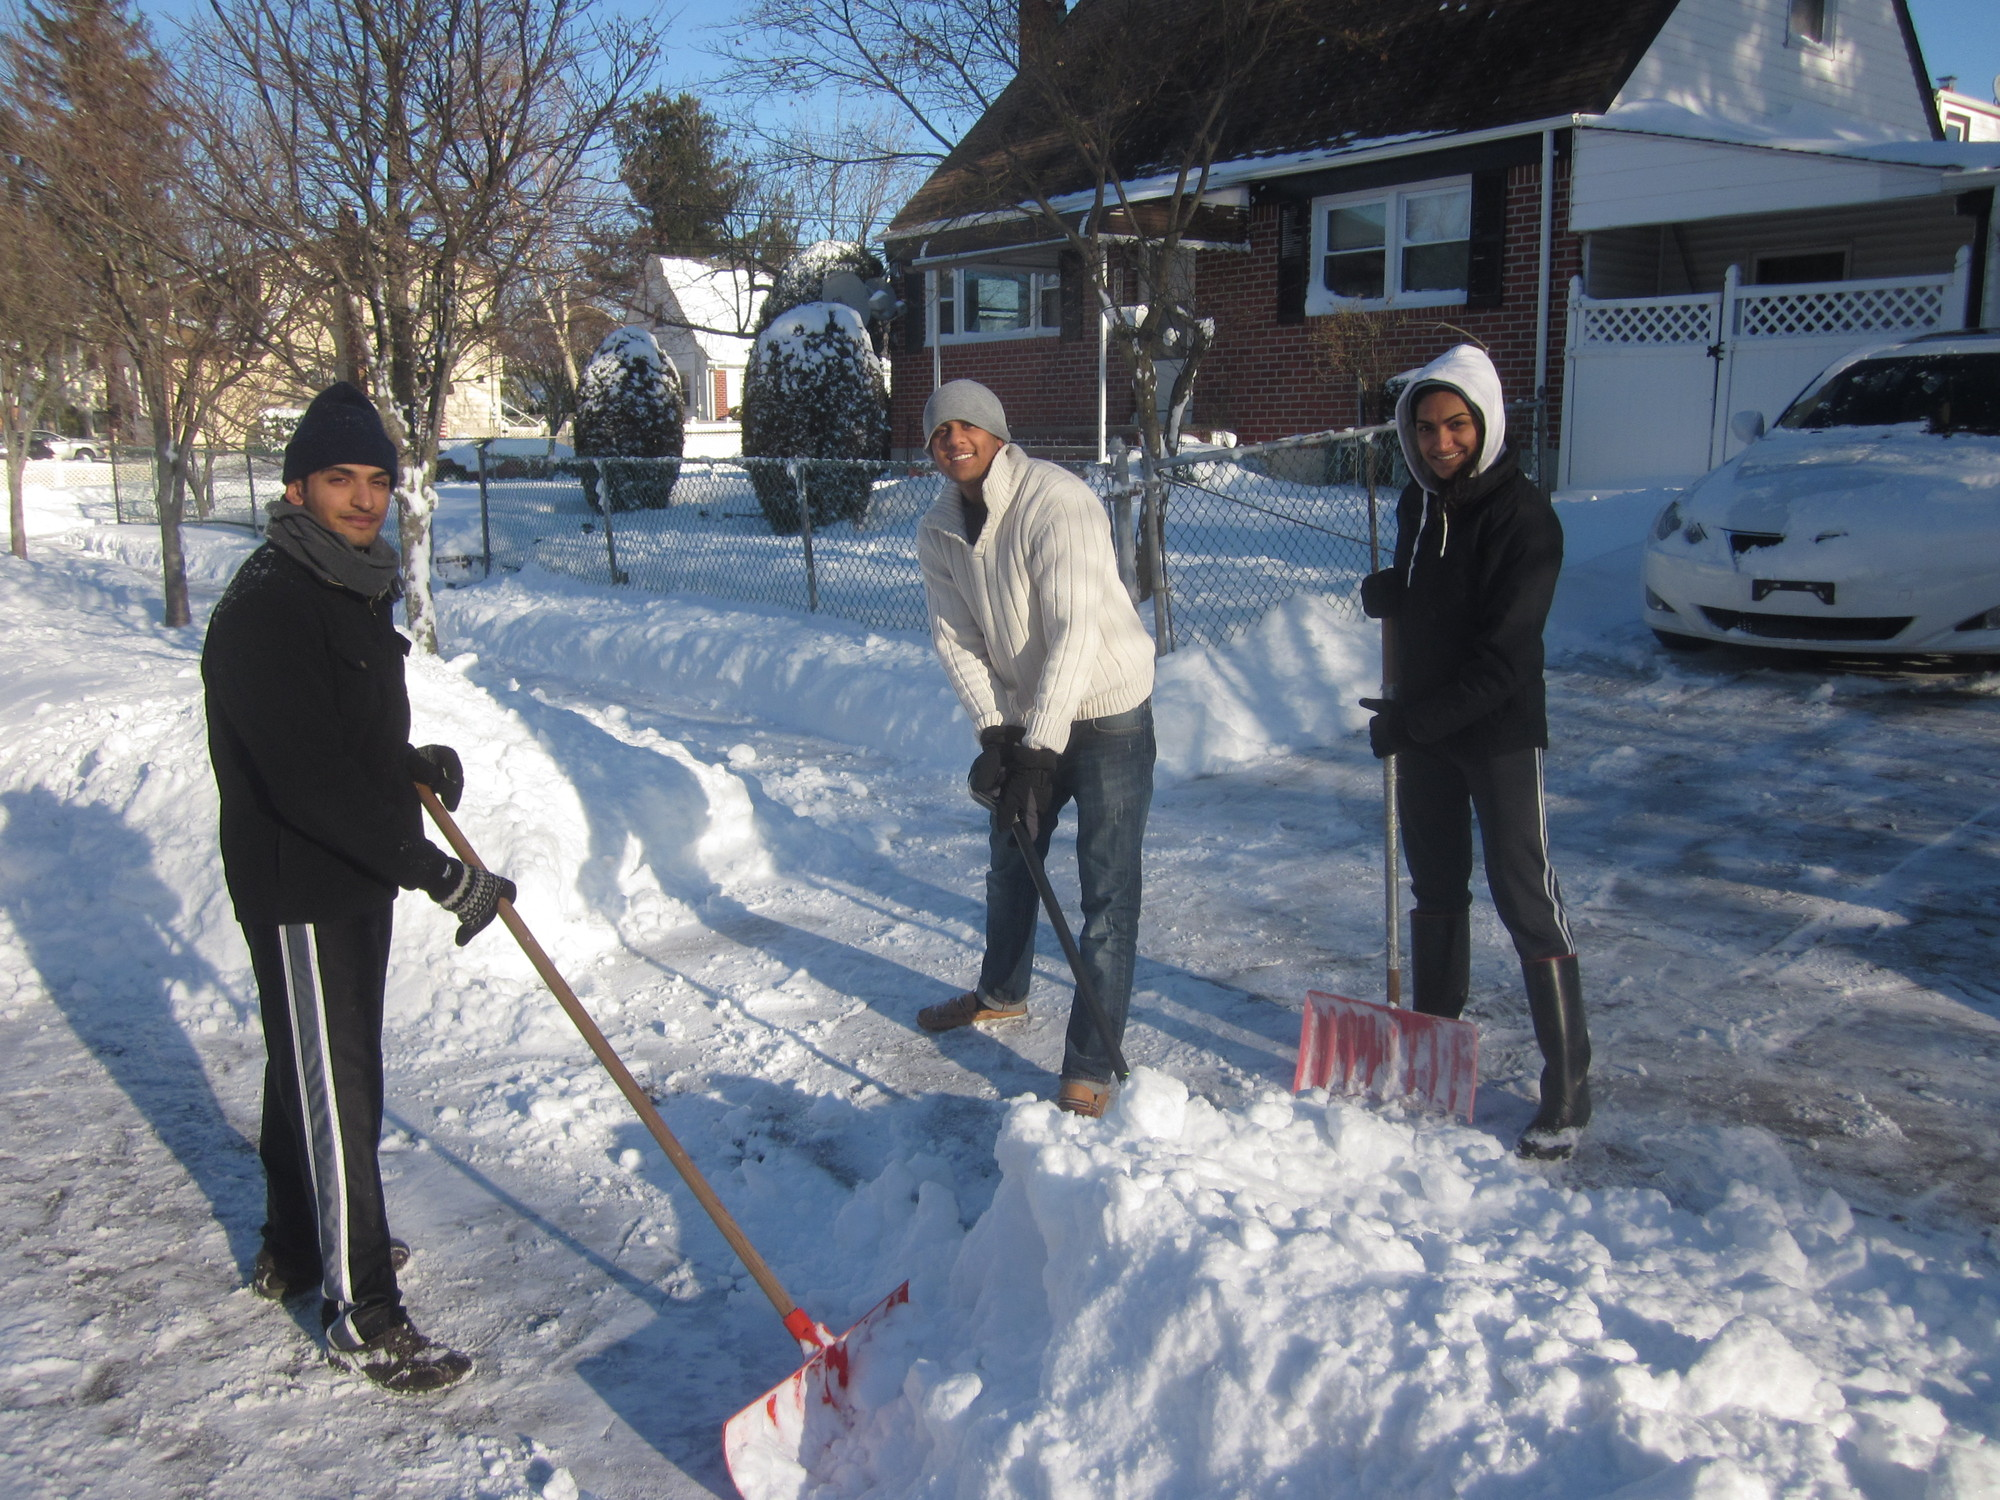 The Patels, from left, Ajay, Dave and Nilam made shoveling a family activity in front of their Lincoln Avenue home.